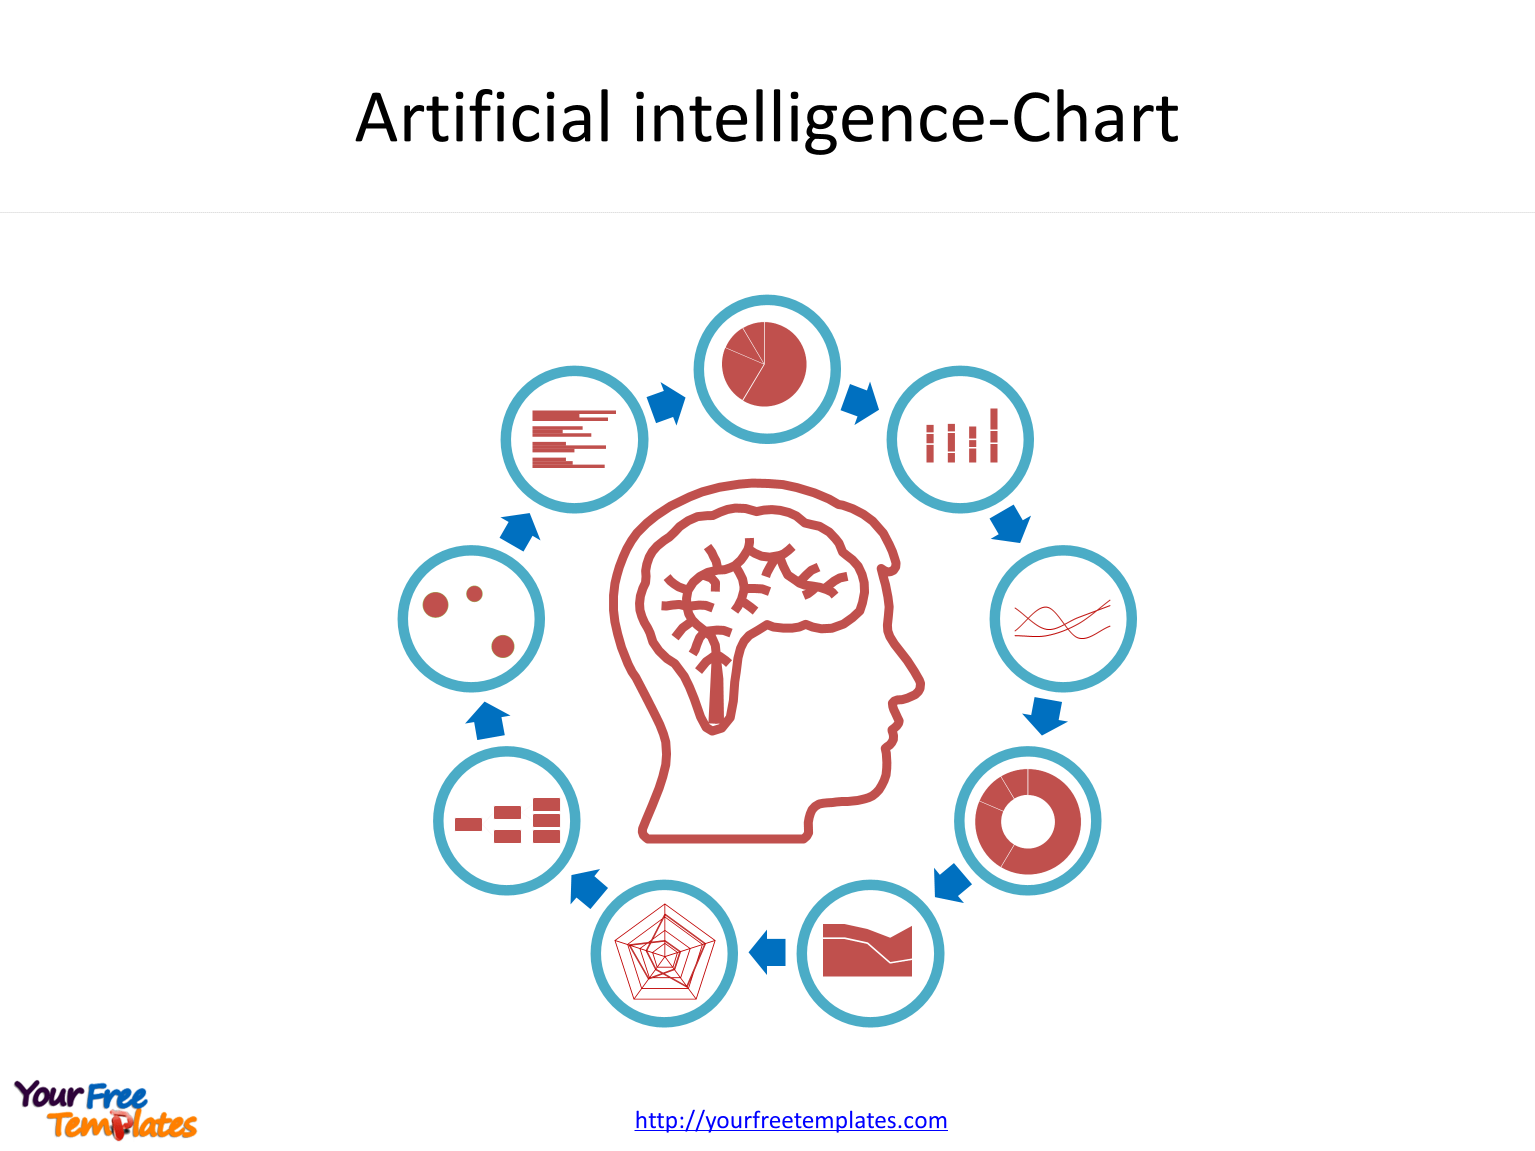 Artificial intelligence powerpoint templates diagram pinterest artificial intelligence powerpoint templates toneelgroepblik Gallery